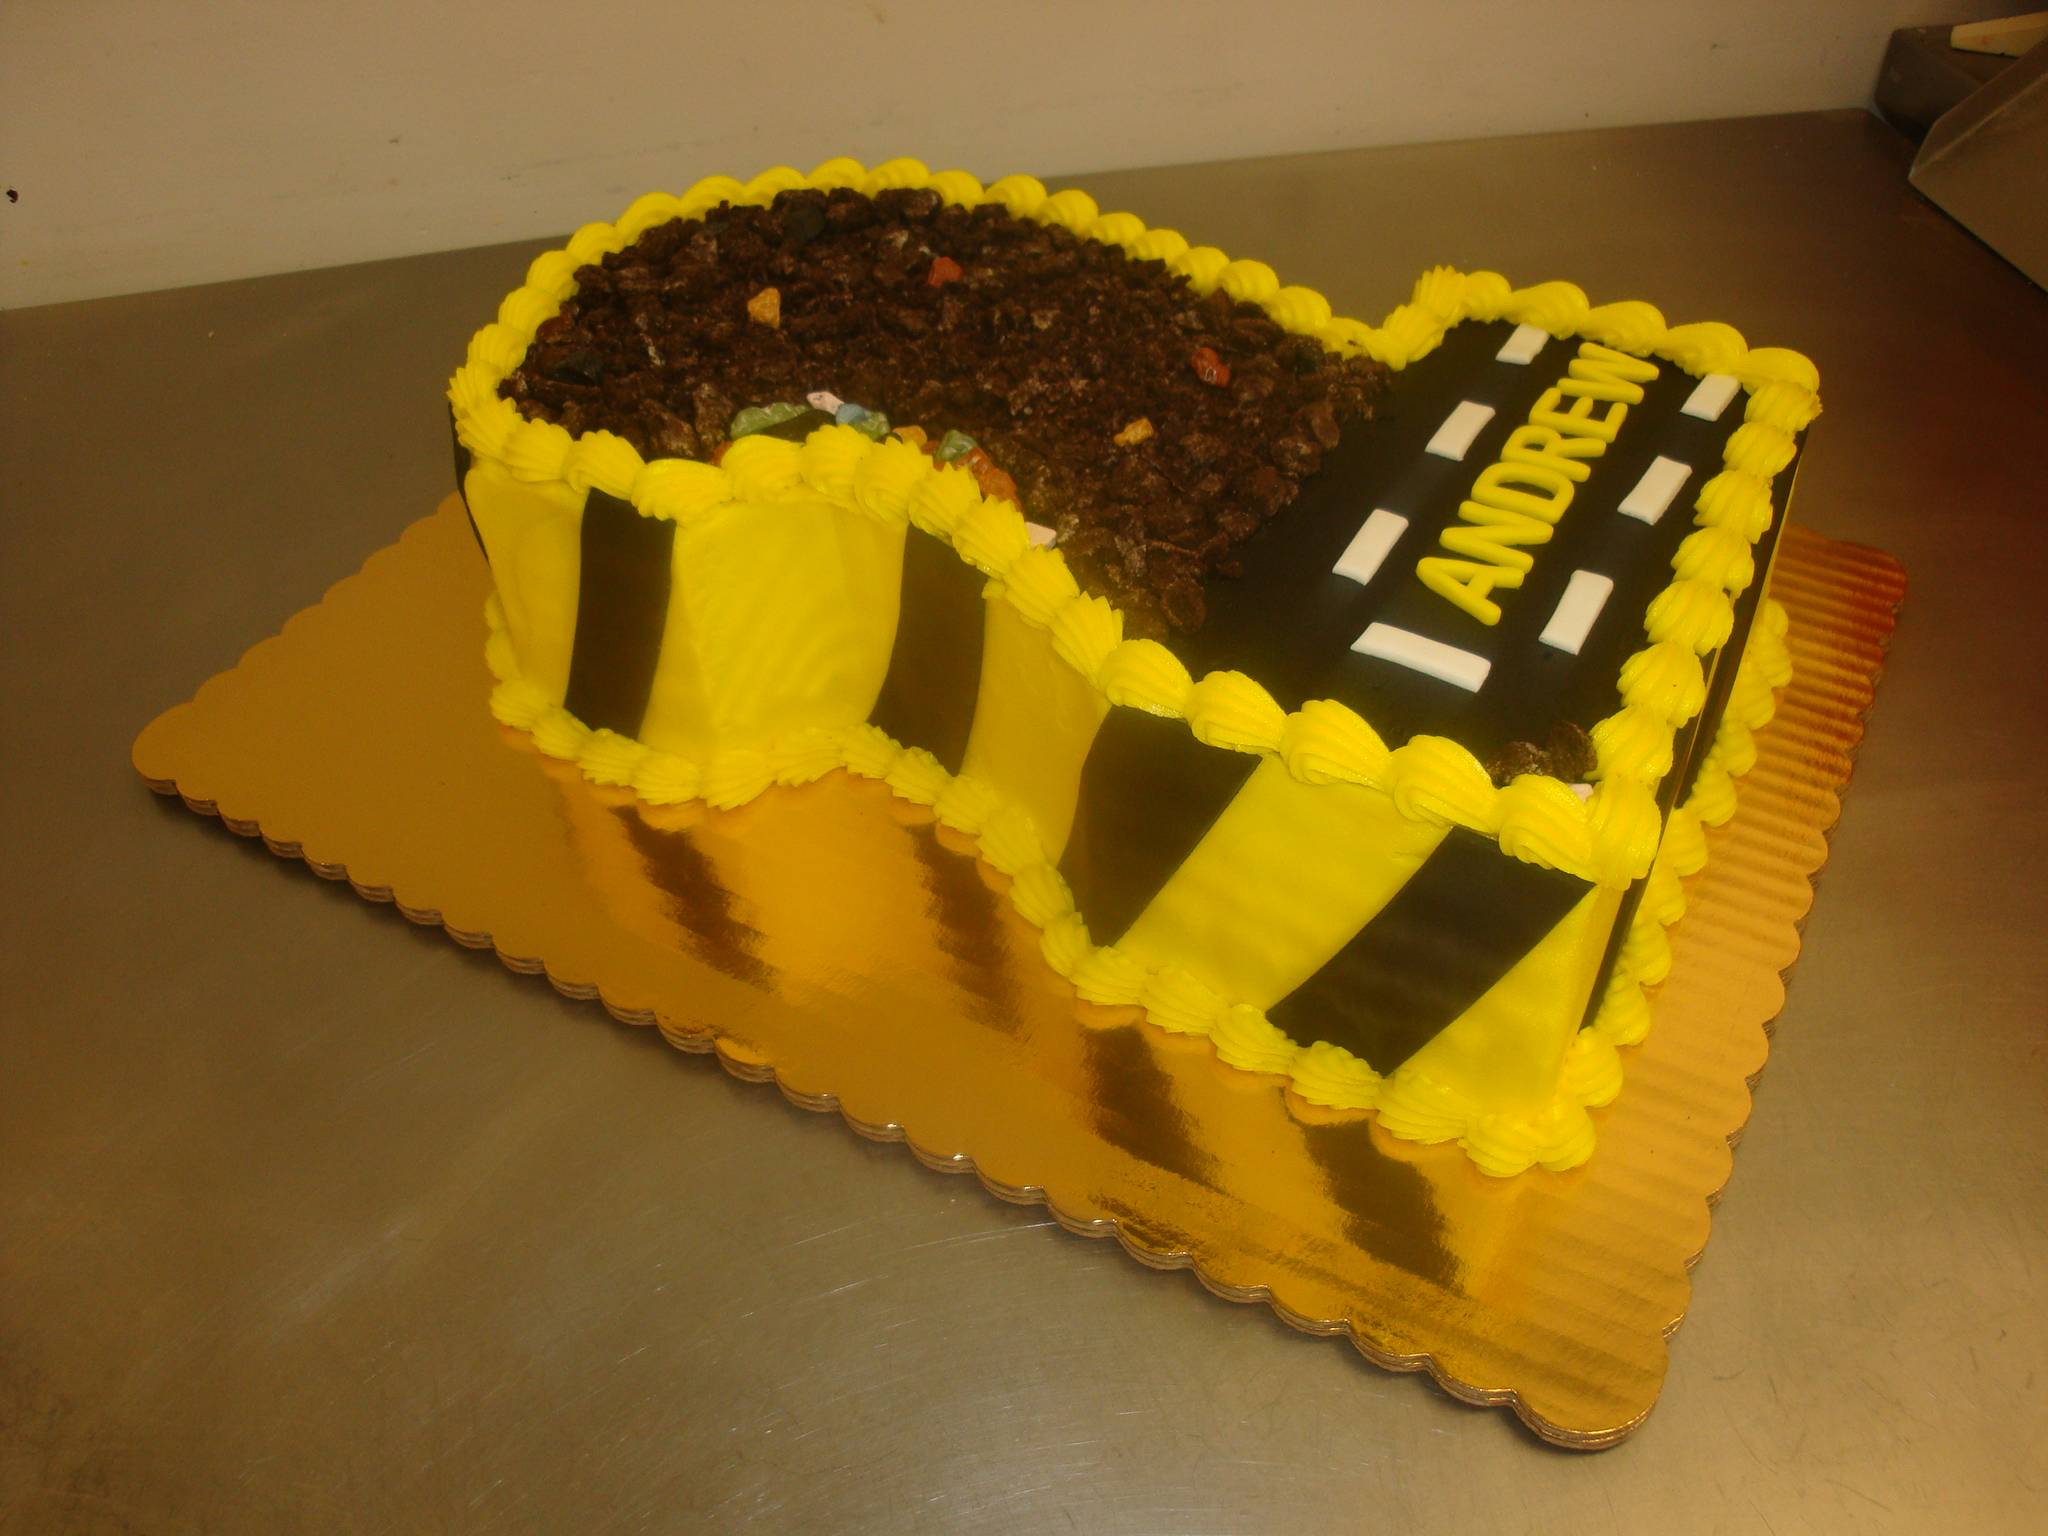 number 2 construction cake 20 servings $85